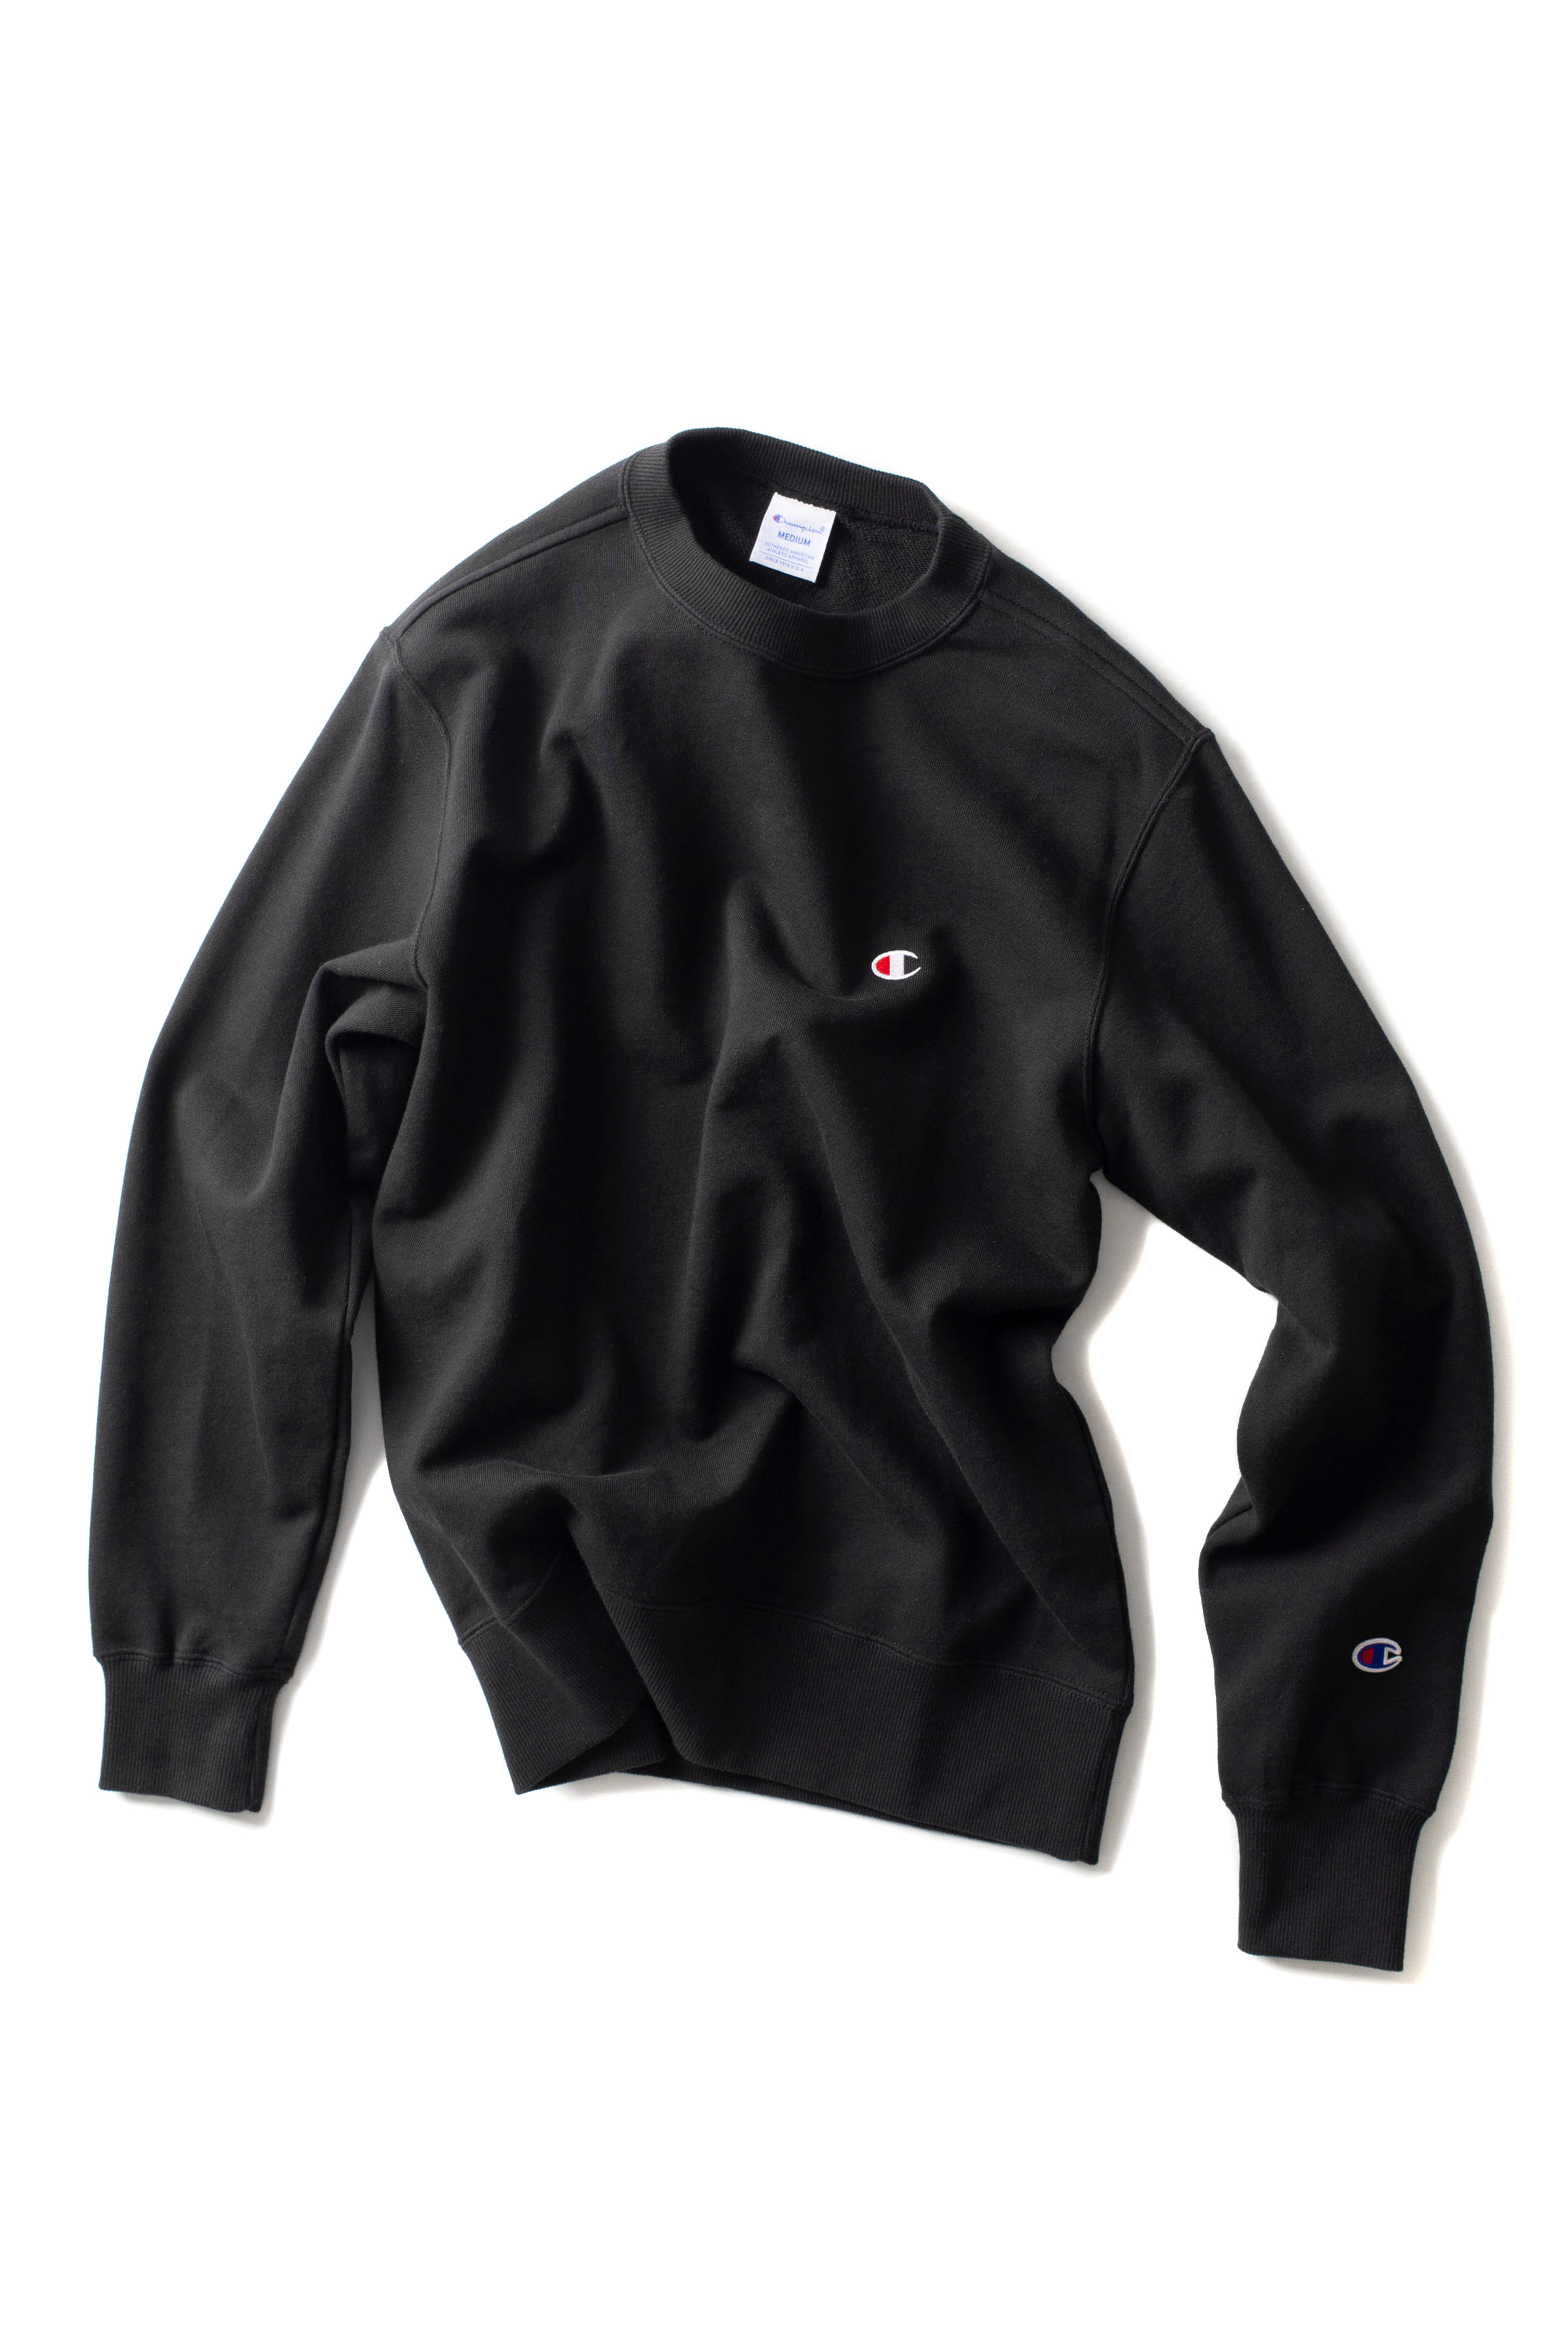 Champion : Basic Crewneck Sweat Shirt (Navy)